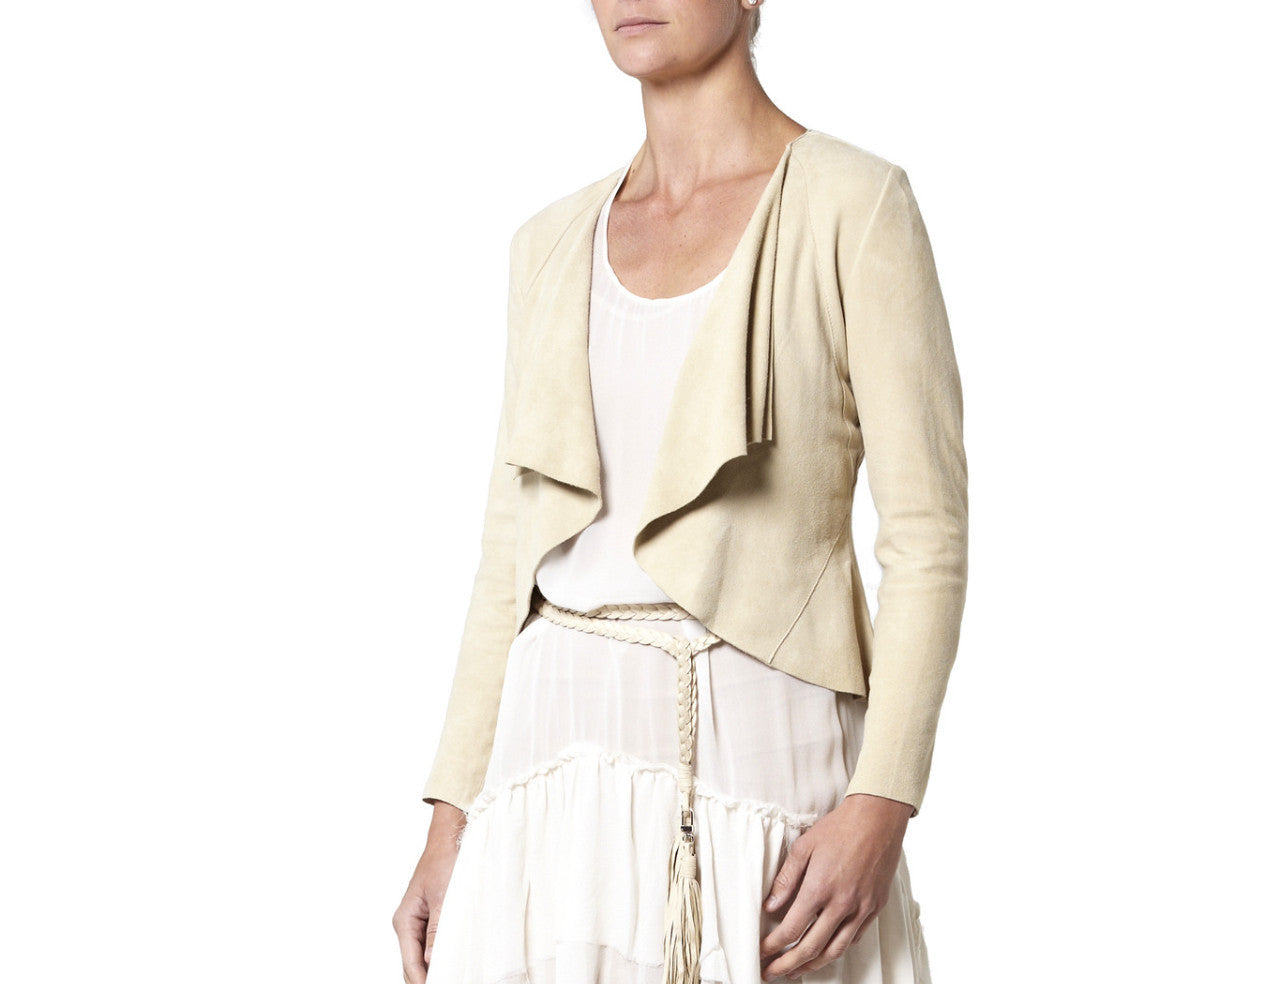 Suede Drape Jacket - Cream